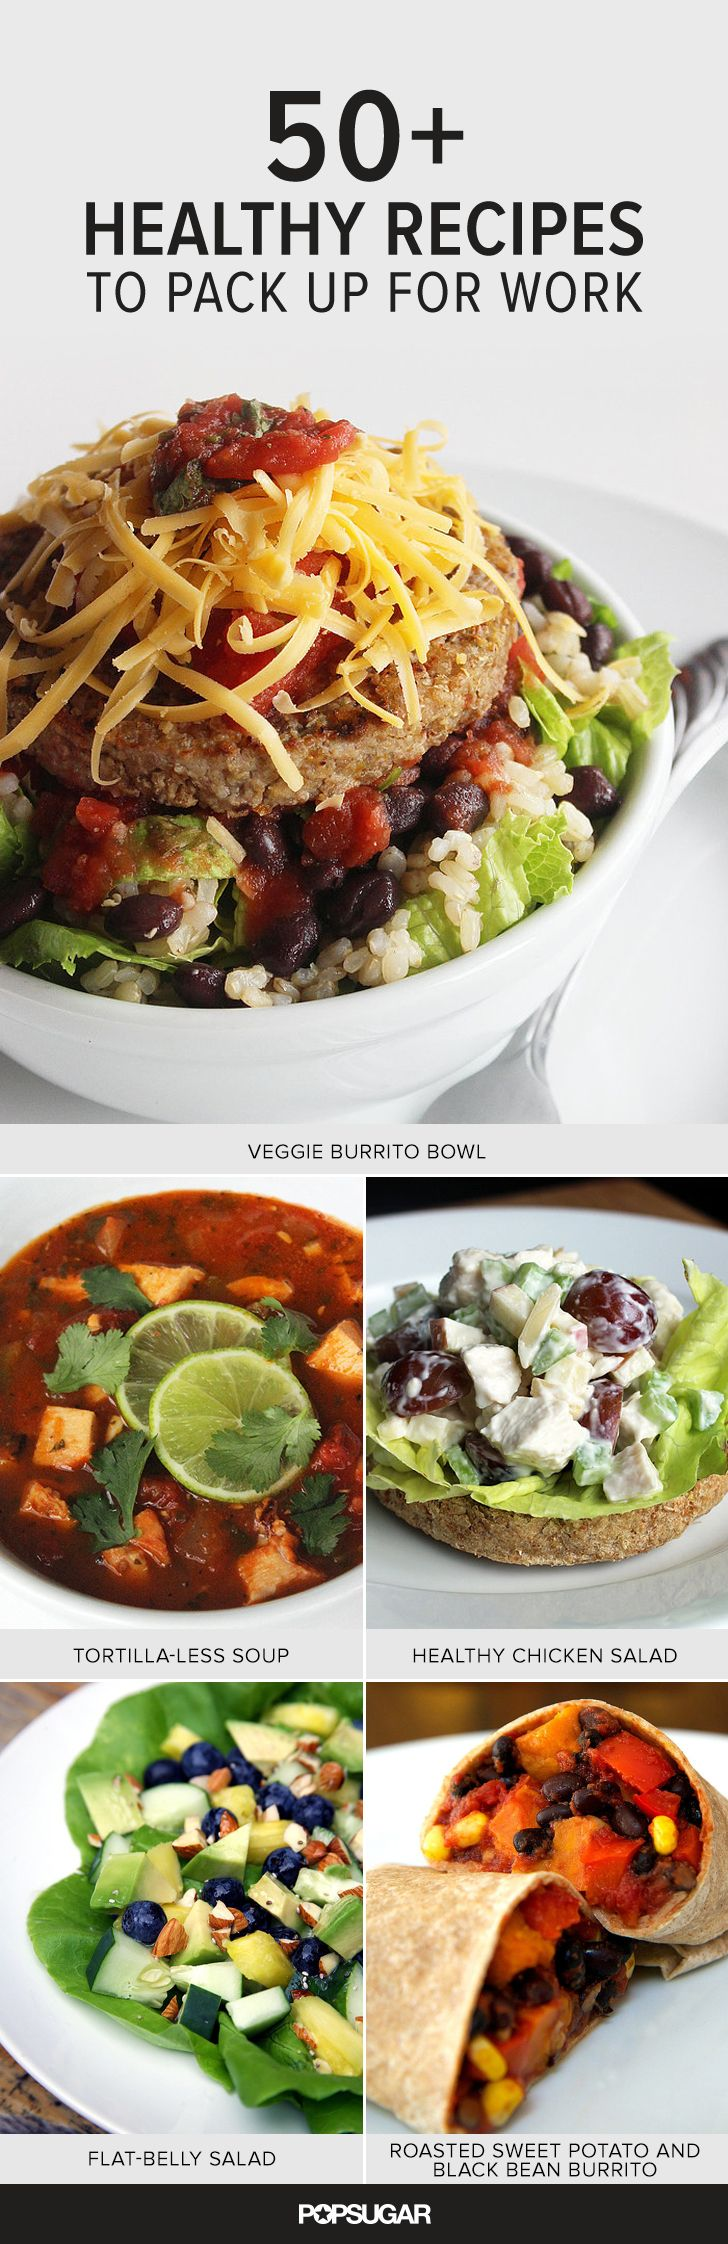 Regardless of your dietary limitations and preferences, (at least!) one of these 50 healthy recipes will fit the bill and make its way into your lunchtime rotation.